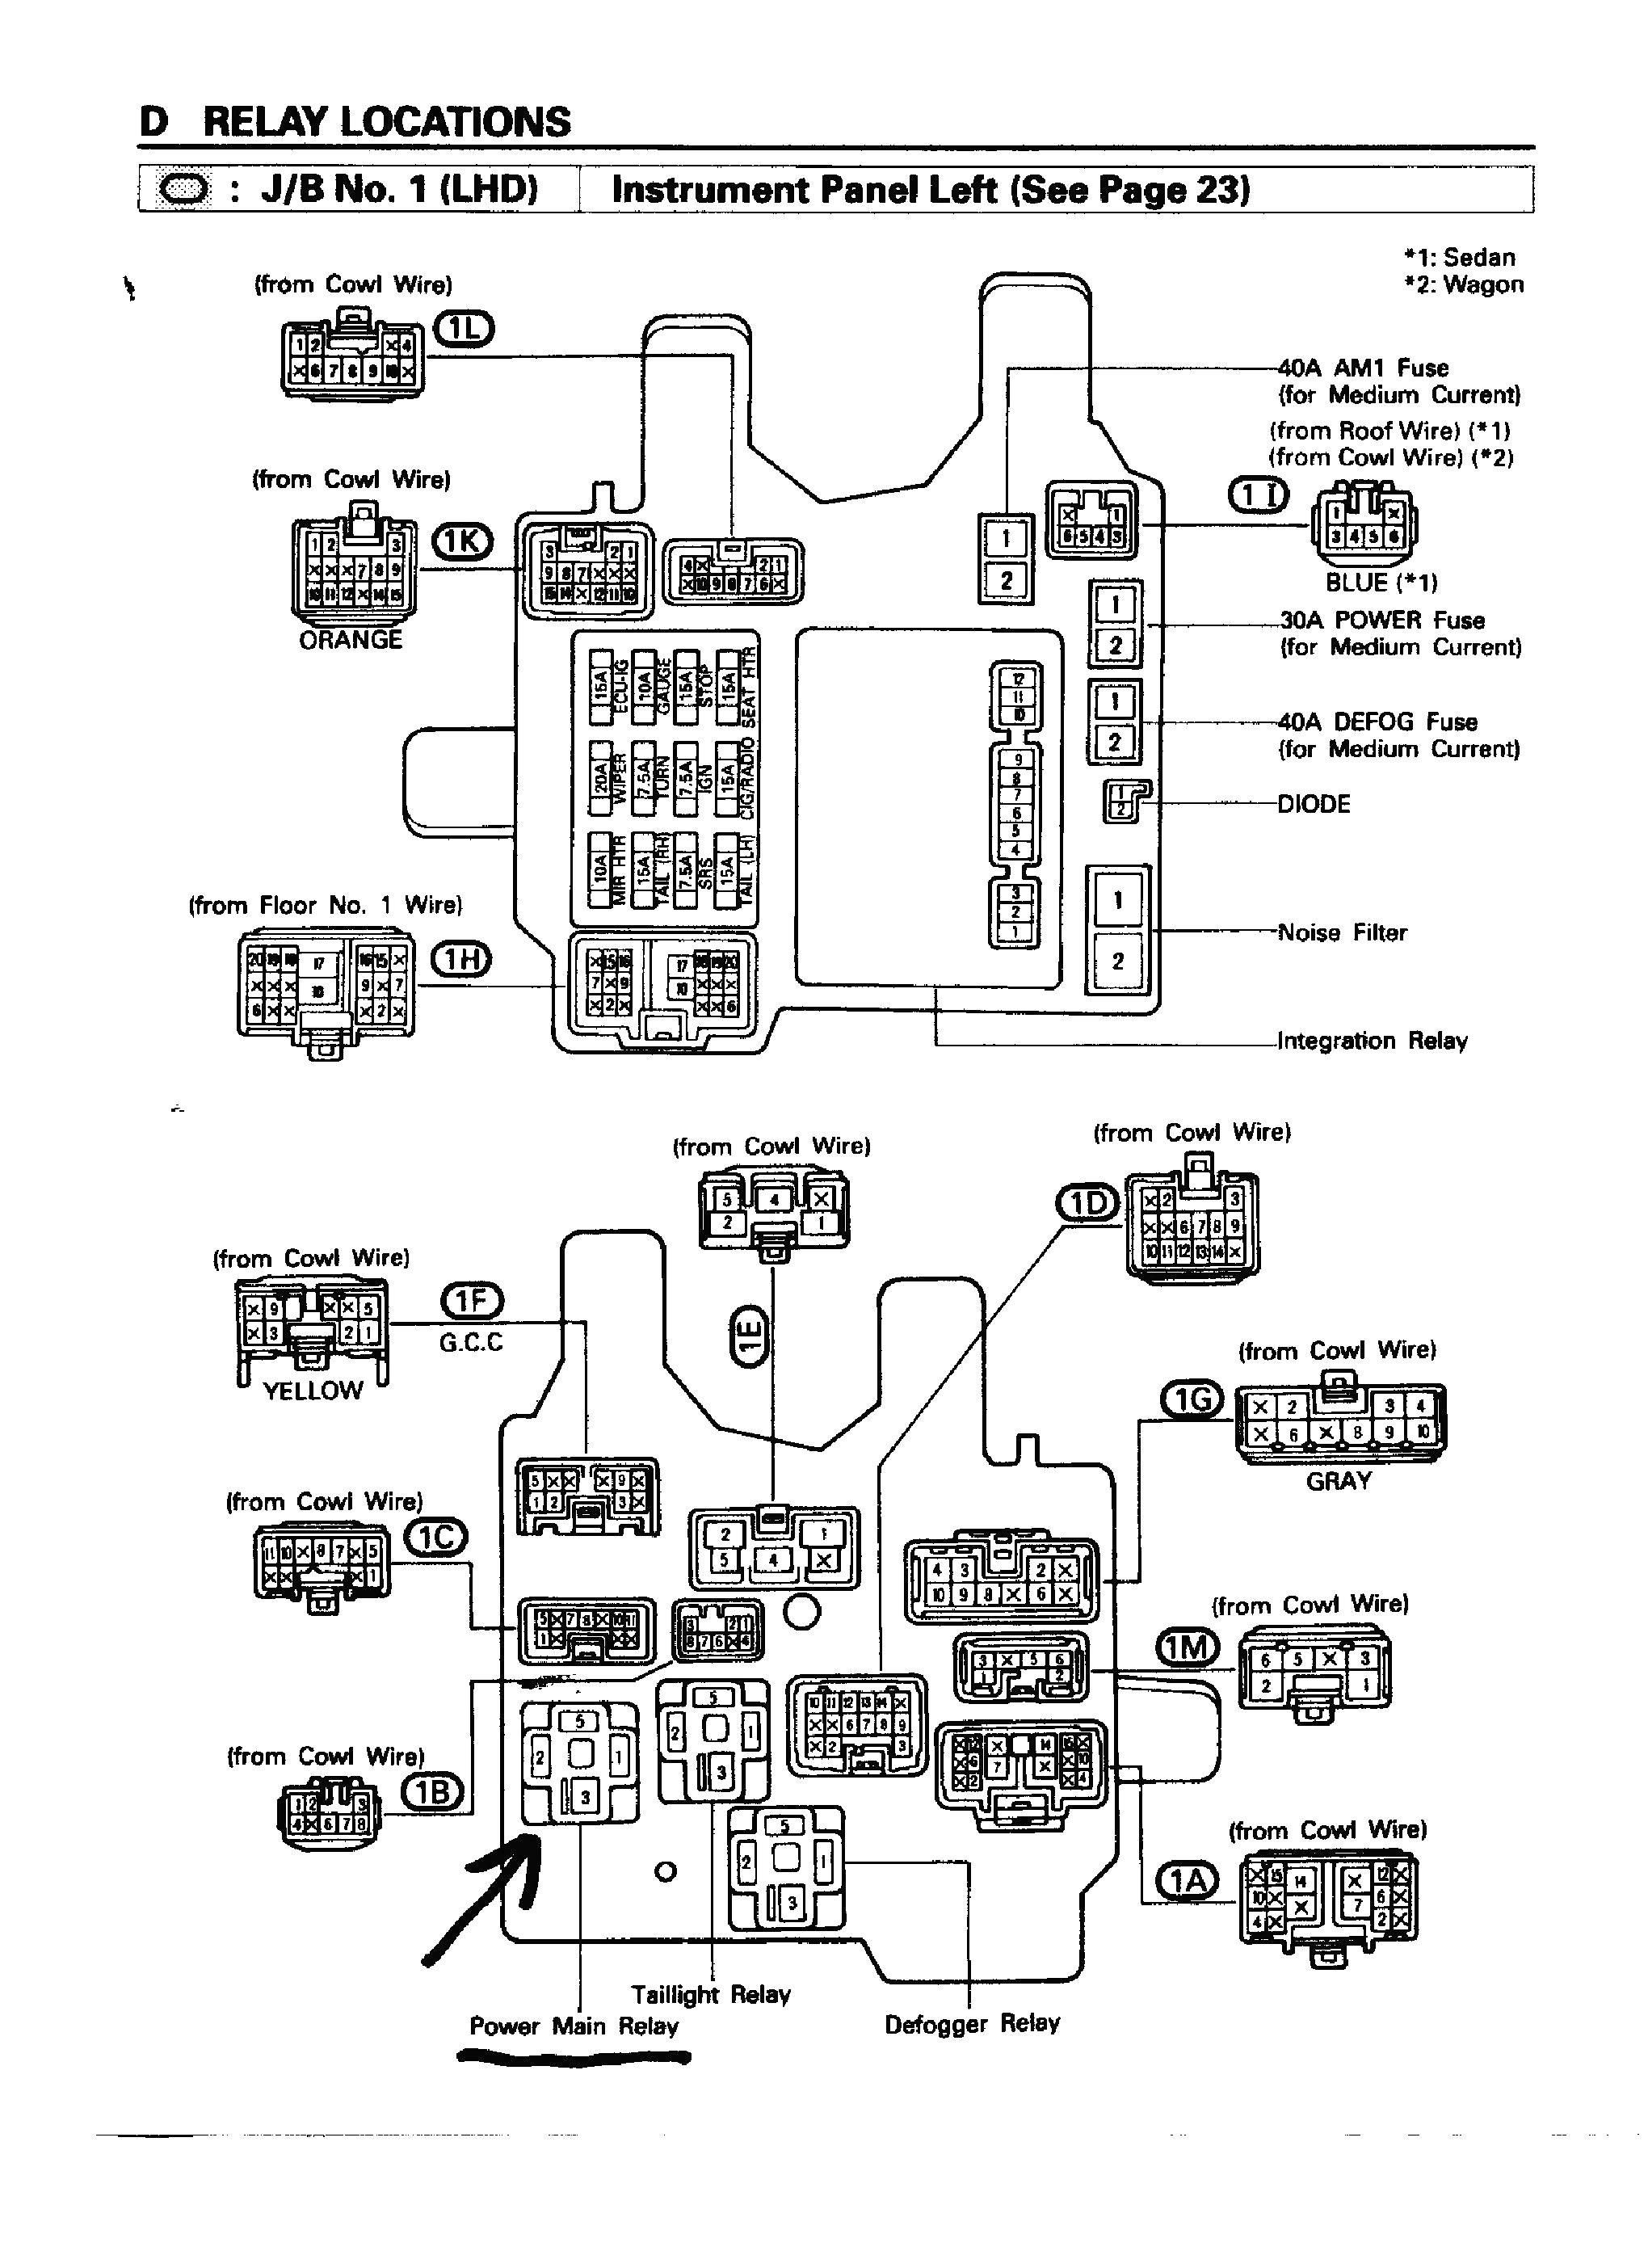 About Wiring Diagram On 2001 Toyota Prius Ignition Wiring Diagram With Regard To Toyota 86120